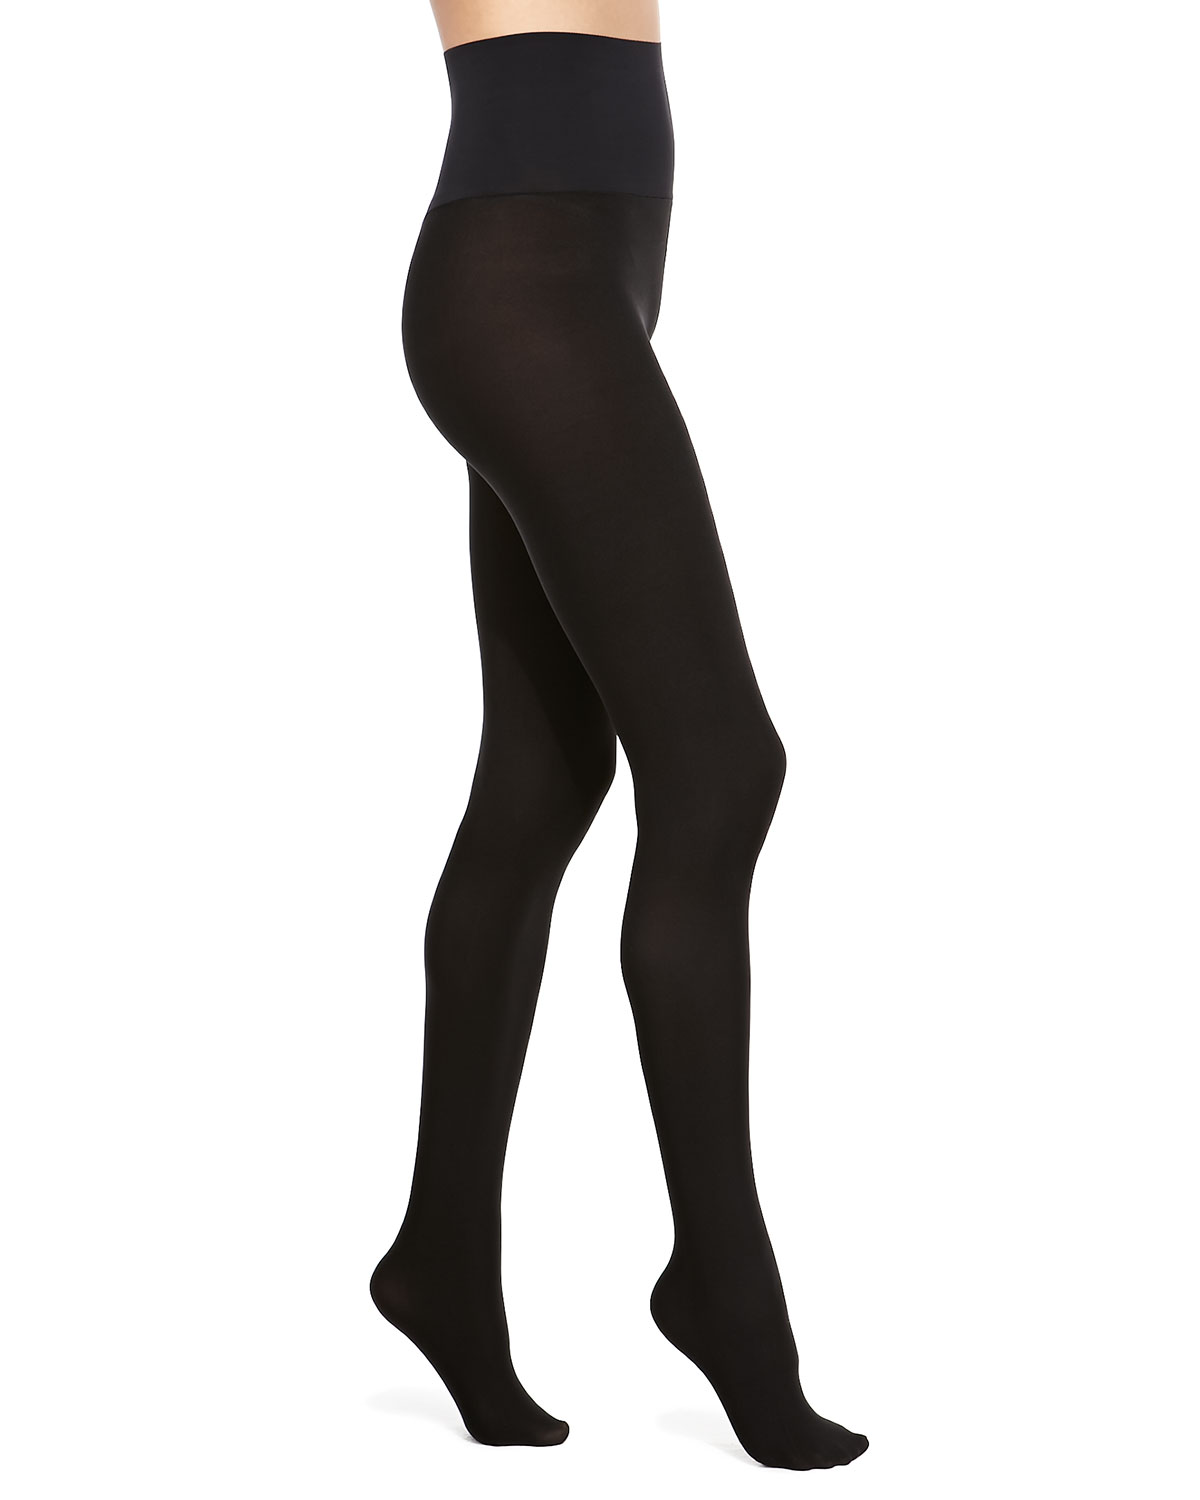 Womens Perfectly Opaque Matte Control Top Tights, Black   Commando   Black